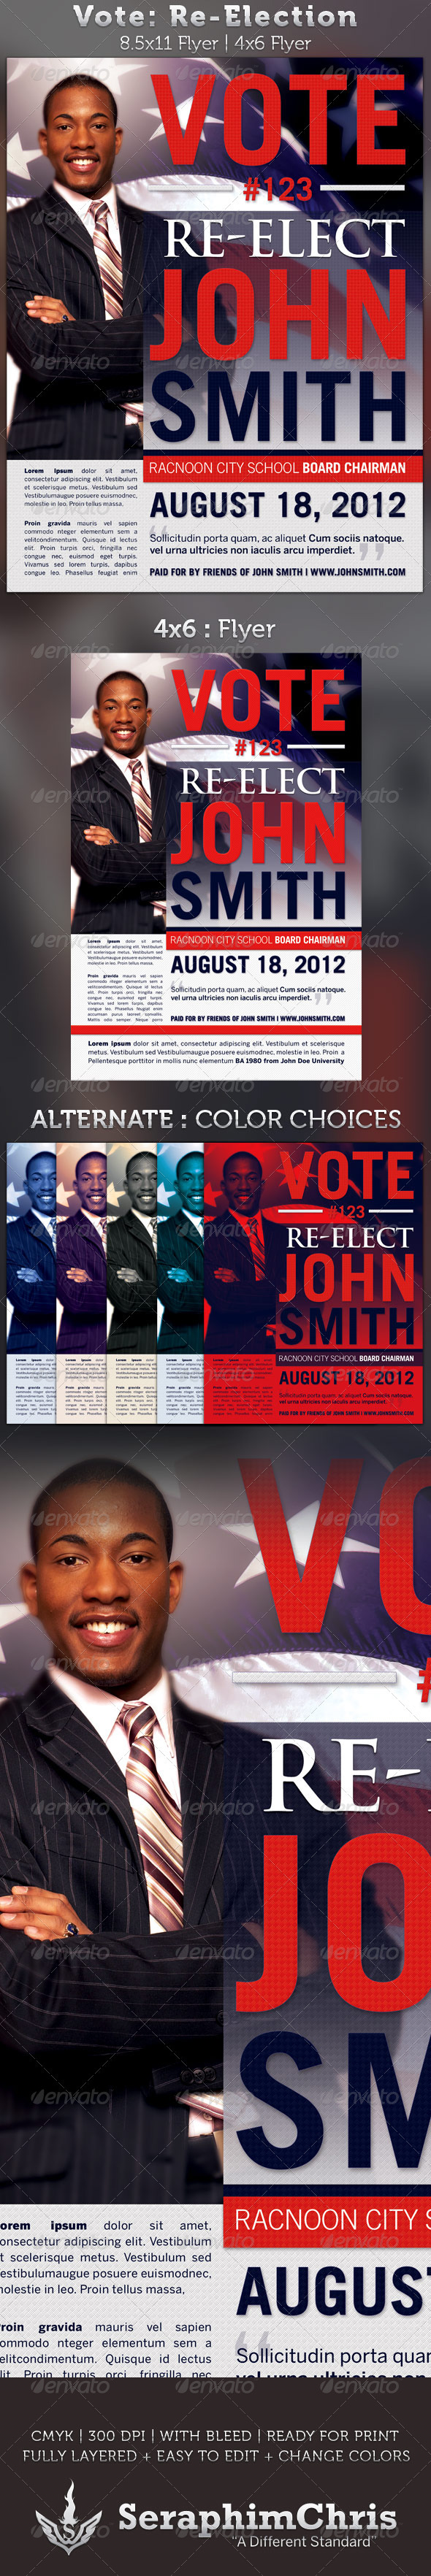 Vote re election flyer templates graphicriver for Voting flyer templates free